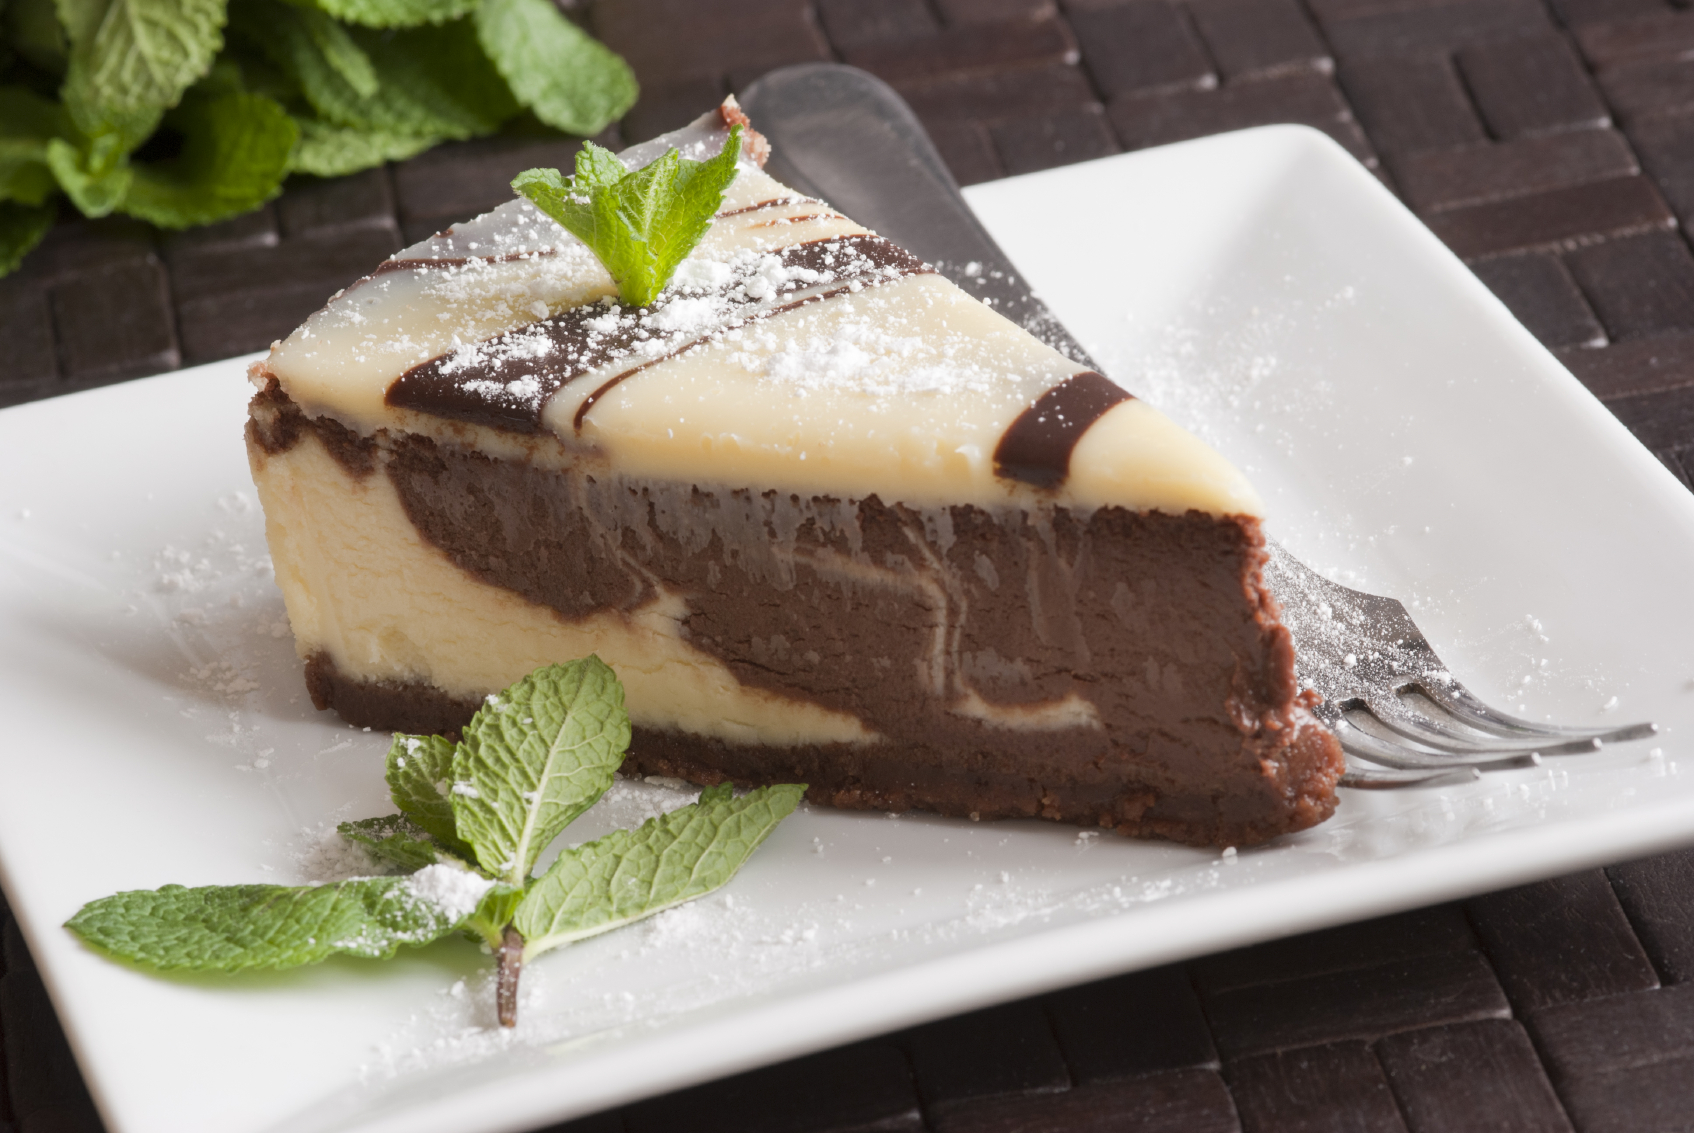 iStock photo Recipe: Mint-chocolate cheesecake